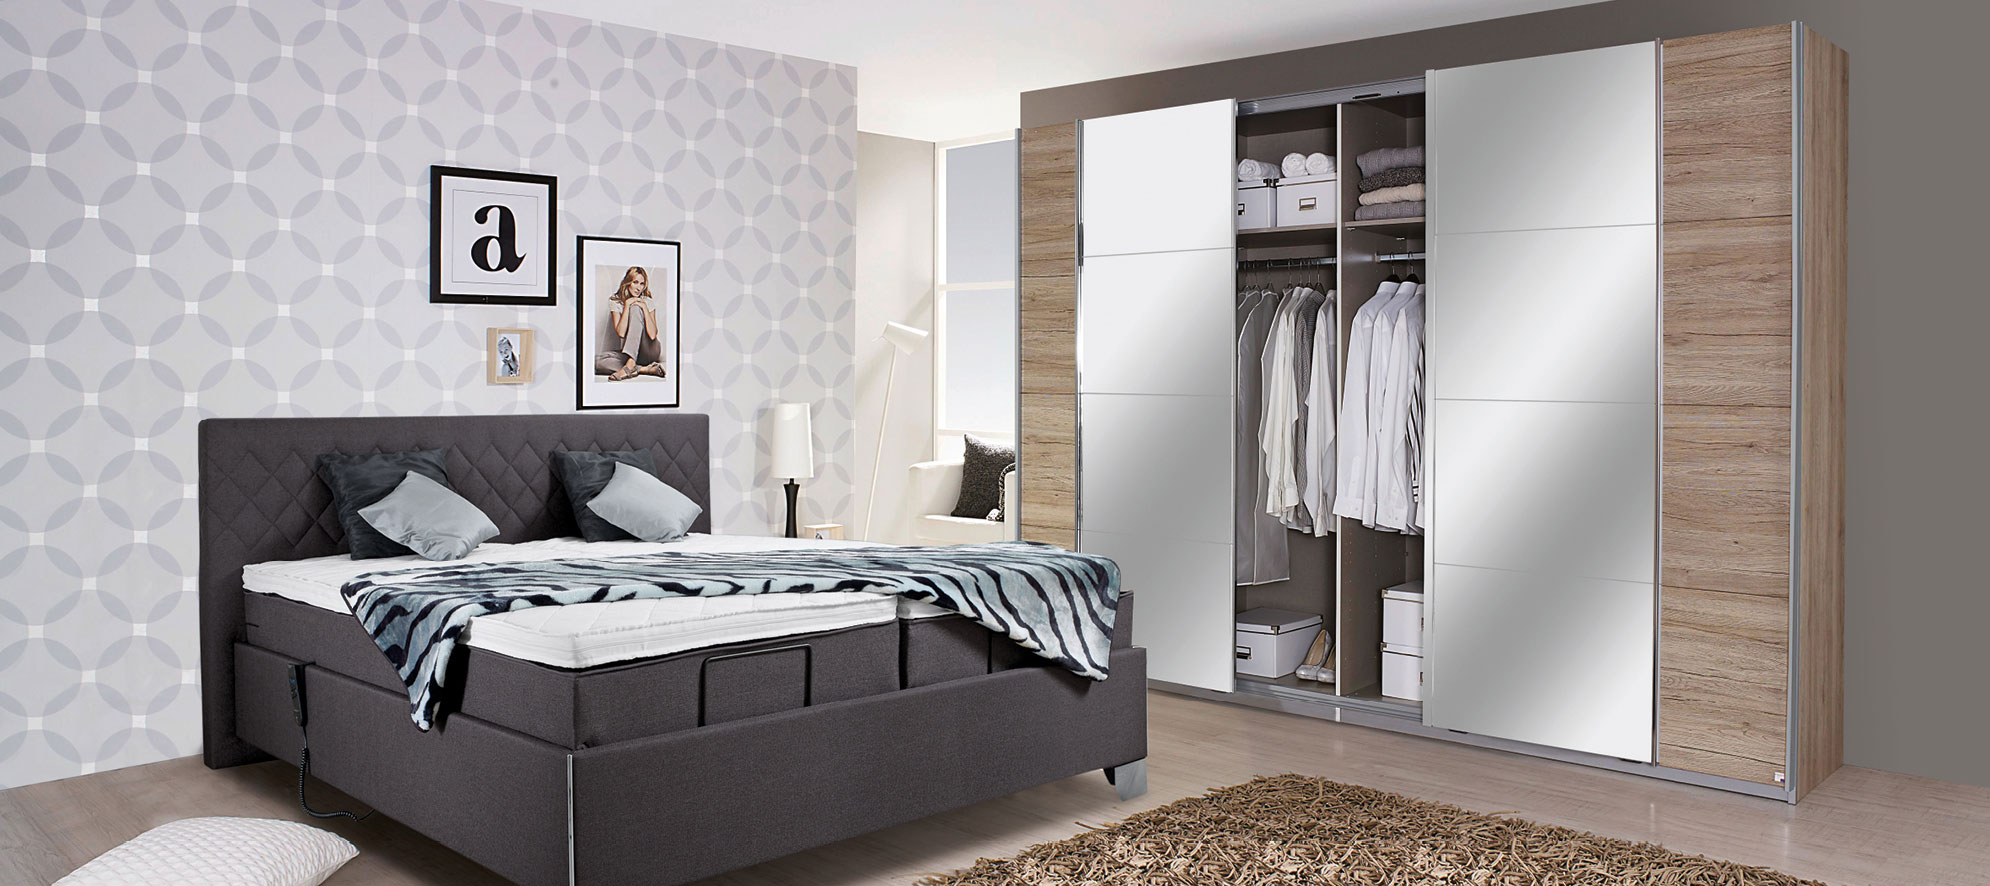 rolli sb m belmarkt in elz limburg m bel k chen gut g nstig. Black Bedroom Furniture Sets. Home Design Ideas